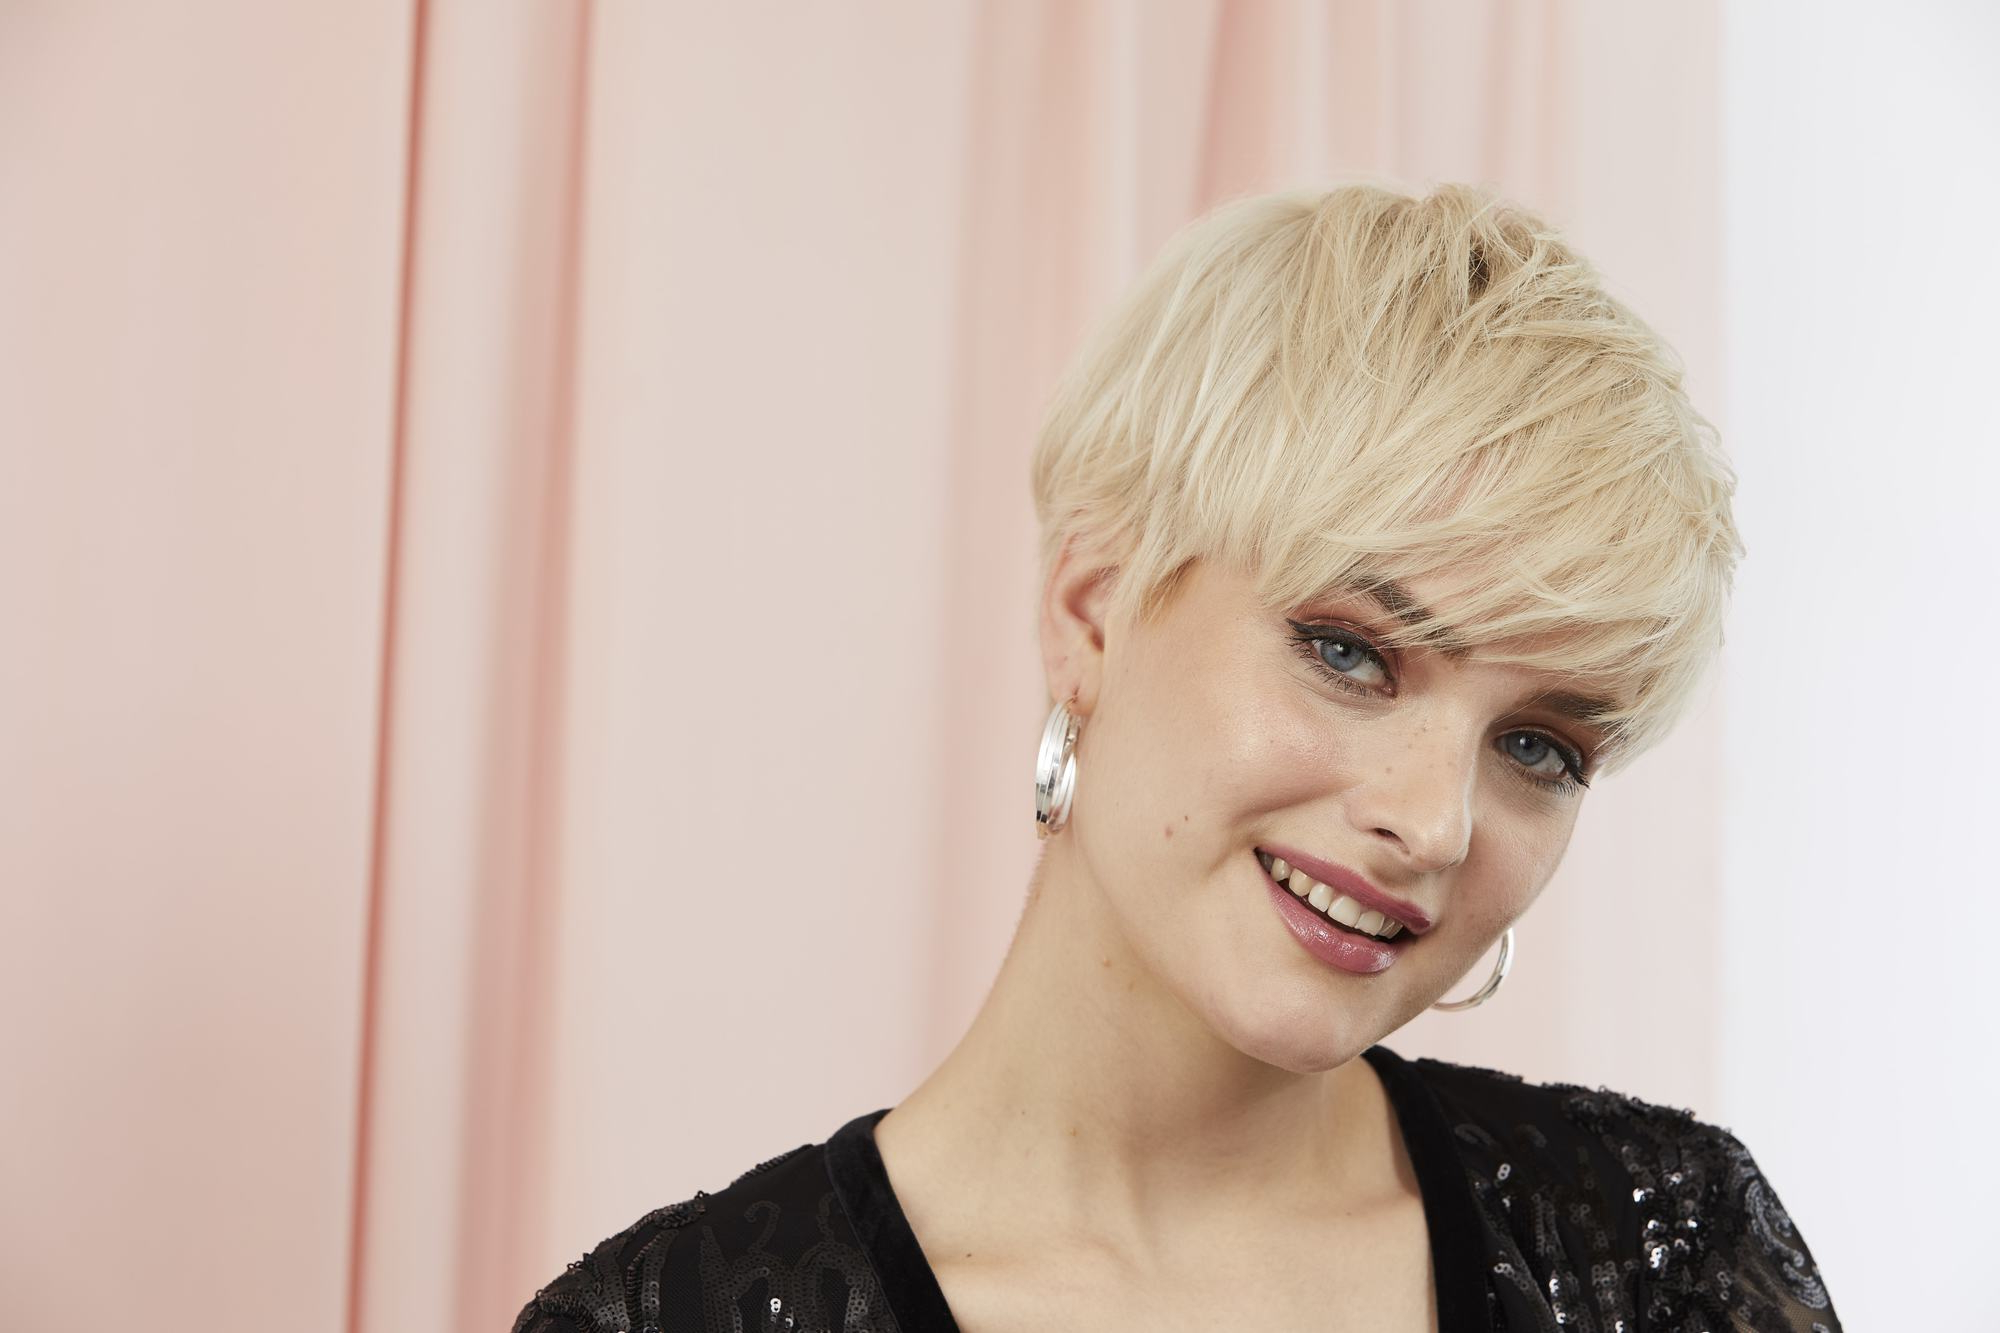 35 Best Pixie Cut Hairstyles For 2019 You Will Want To See With Regard To Choppy Pixie Bob Hairstyles For Fine Hair (View 3 of 20)